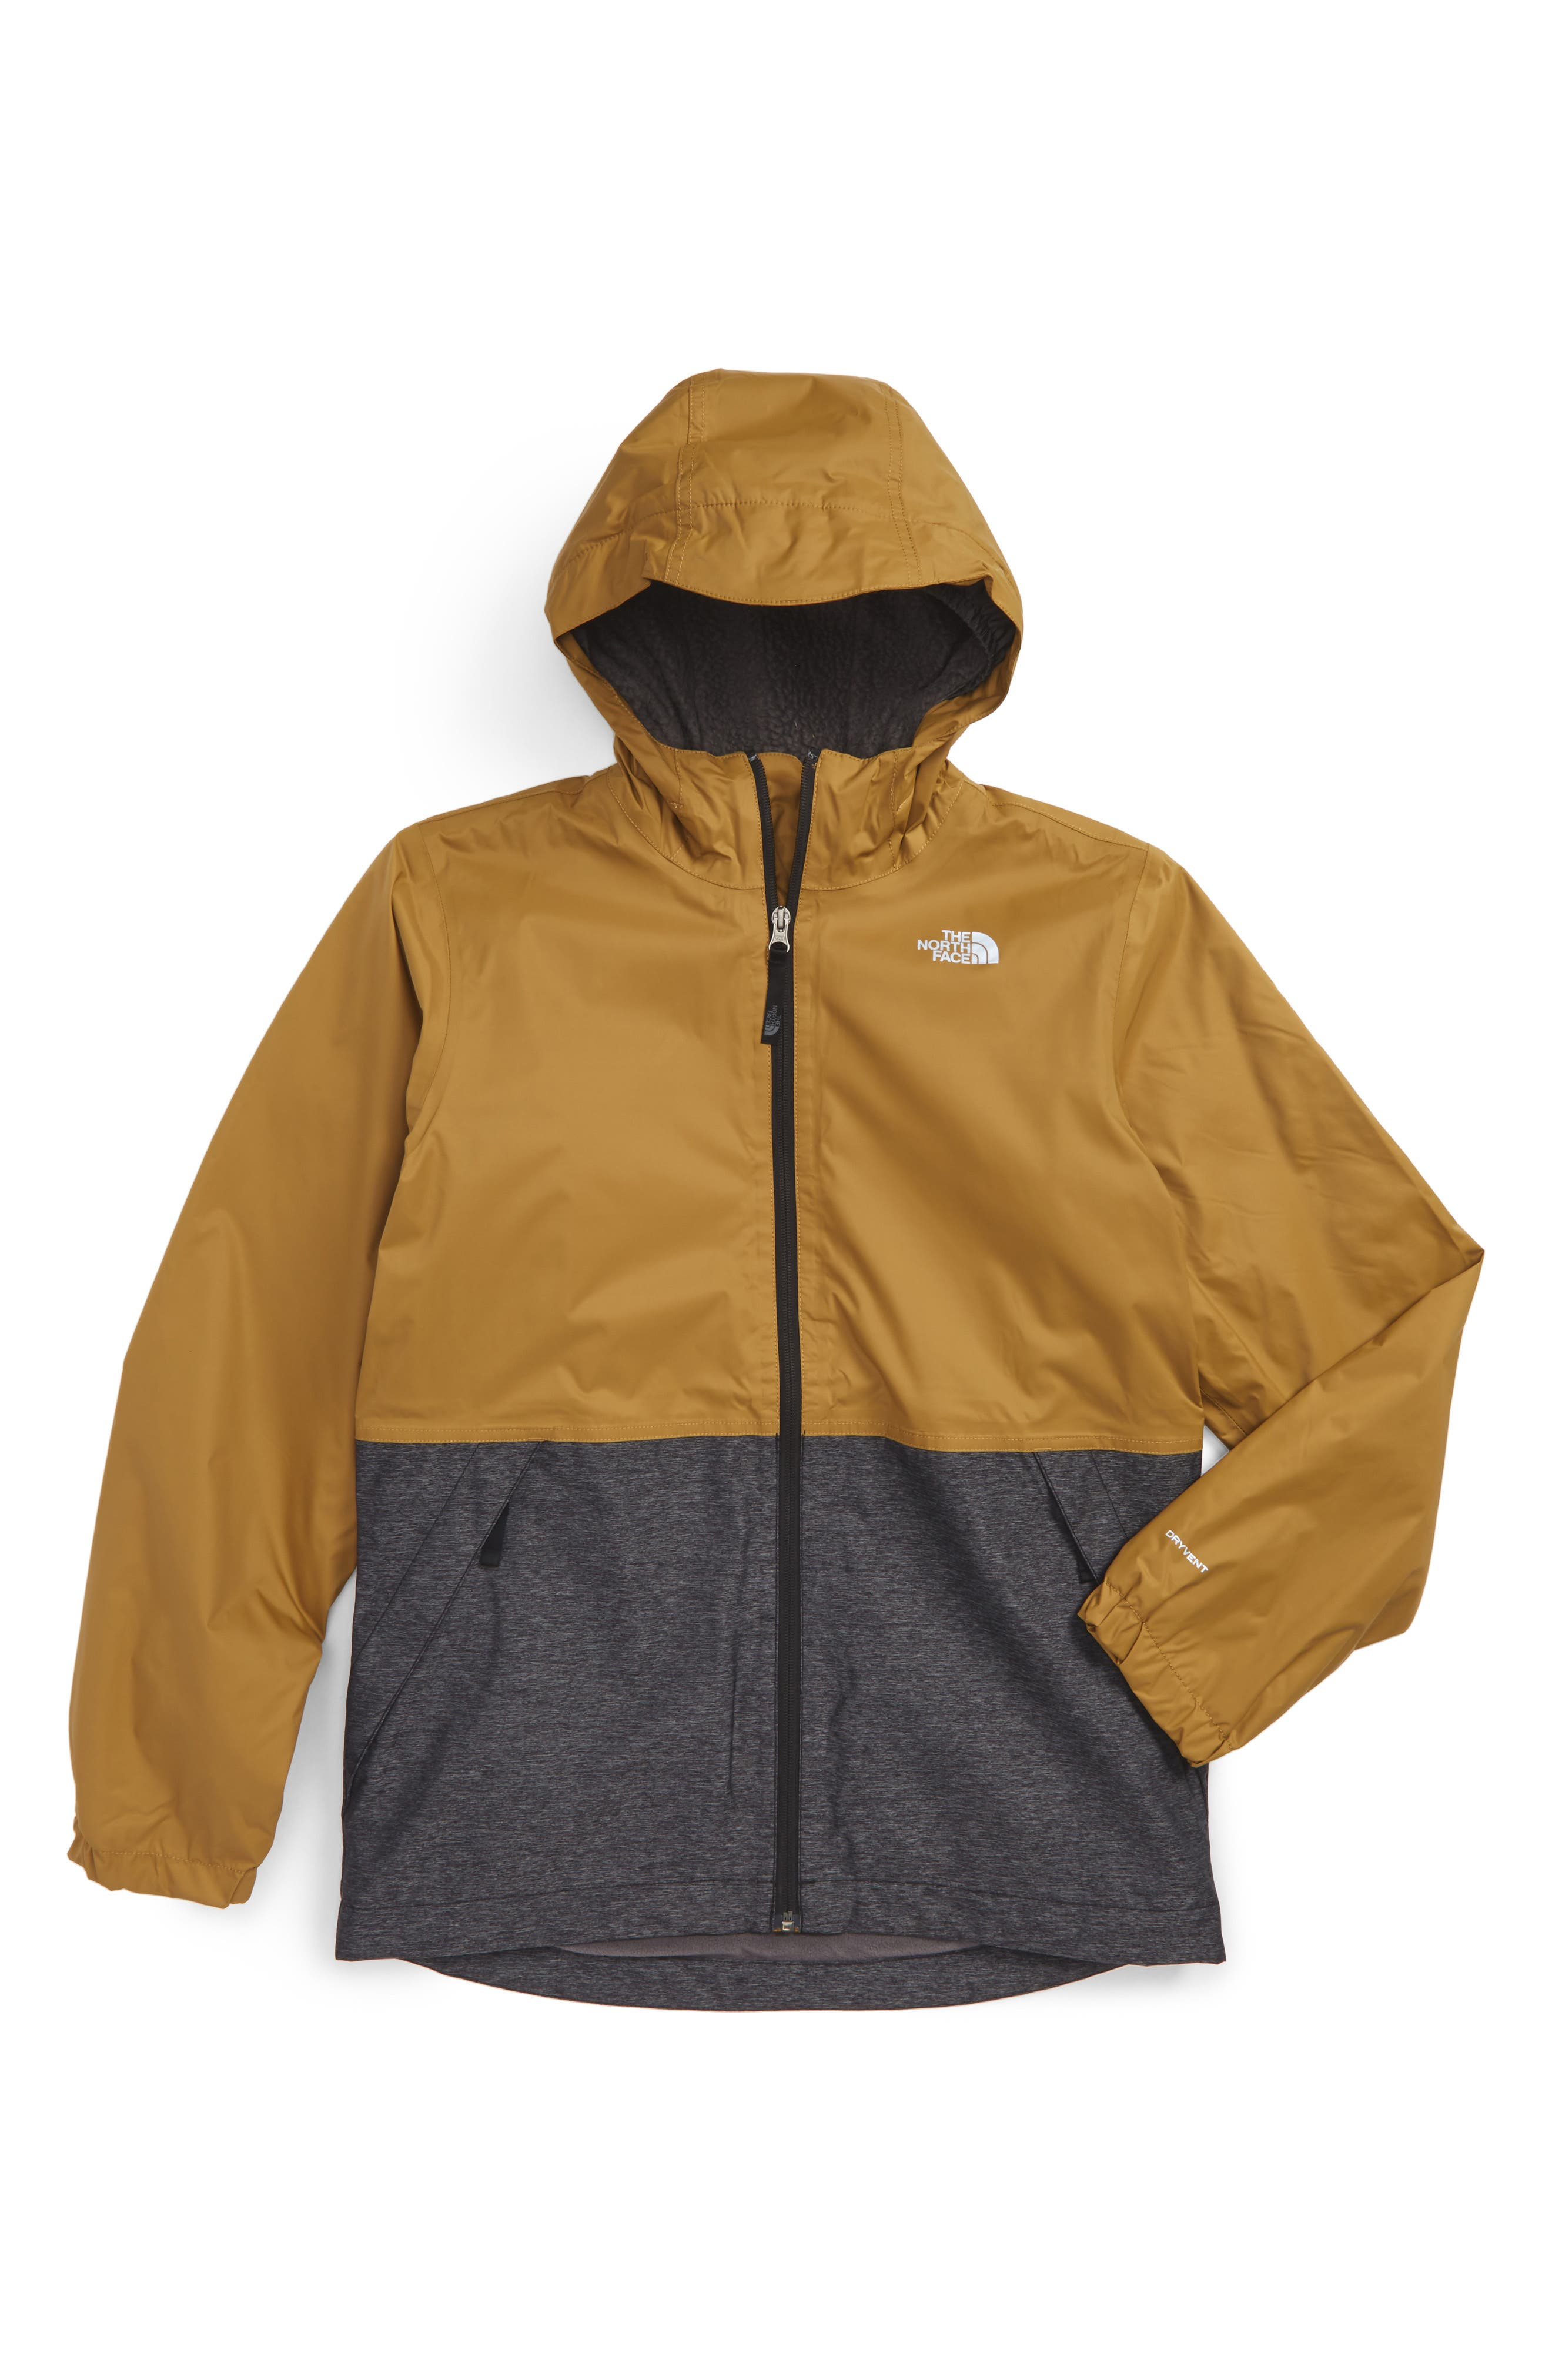 Alternate Image 1 Selected - The North Face Warm Storm Hooded Waterproof Jacket (Big Boys)